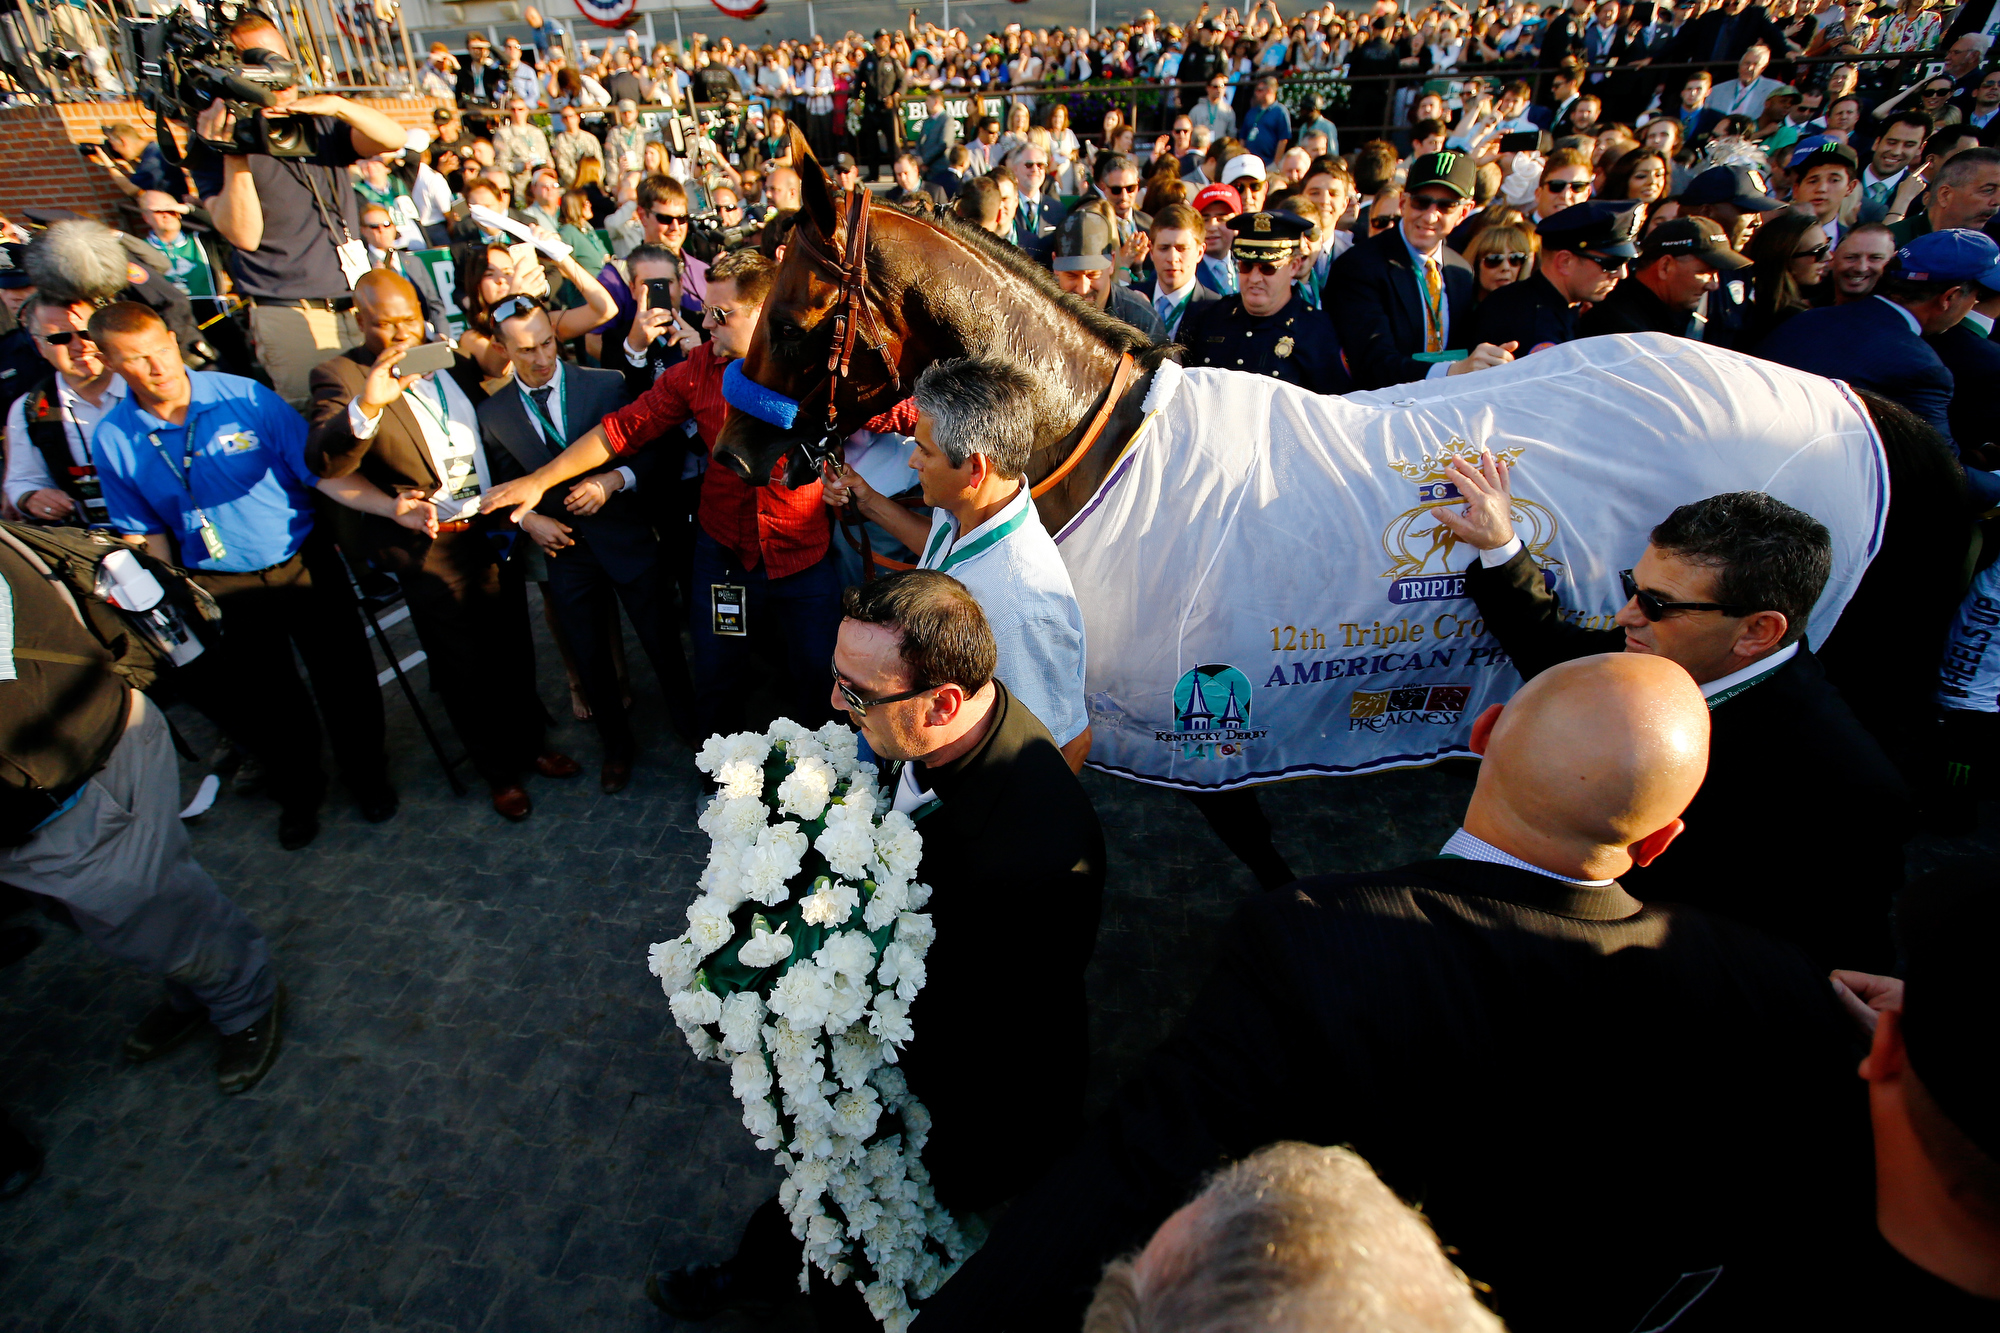 American Pharoah wins fabled Triple Crown